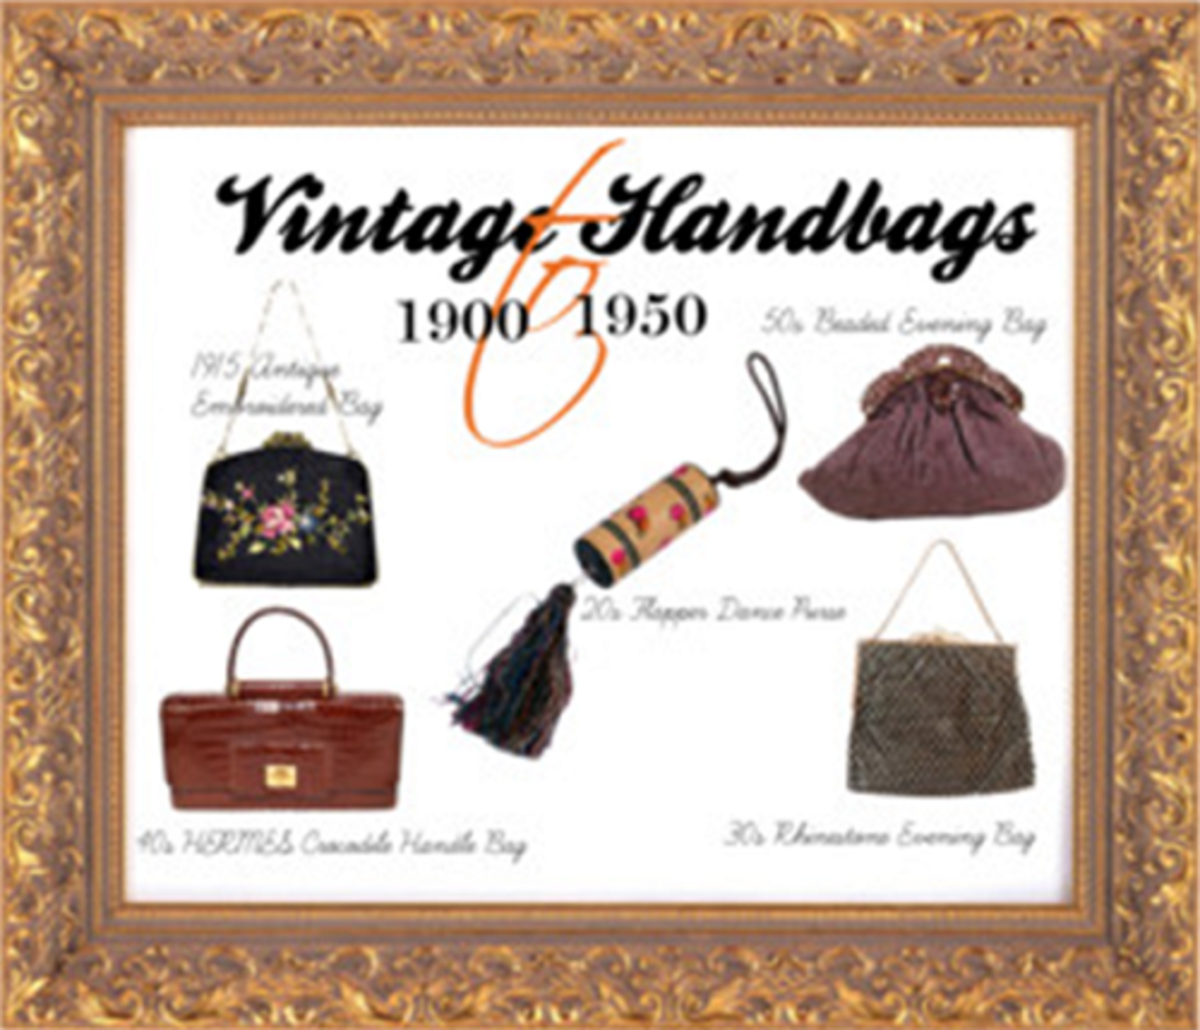 Styles of popular vintage style women handbags and purses of the early to mid-20th century